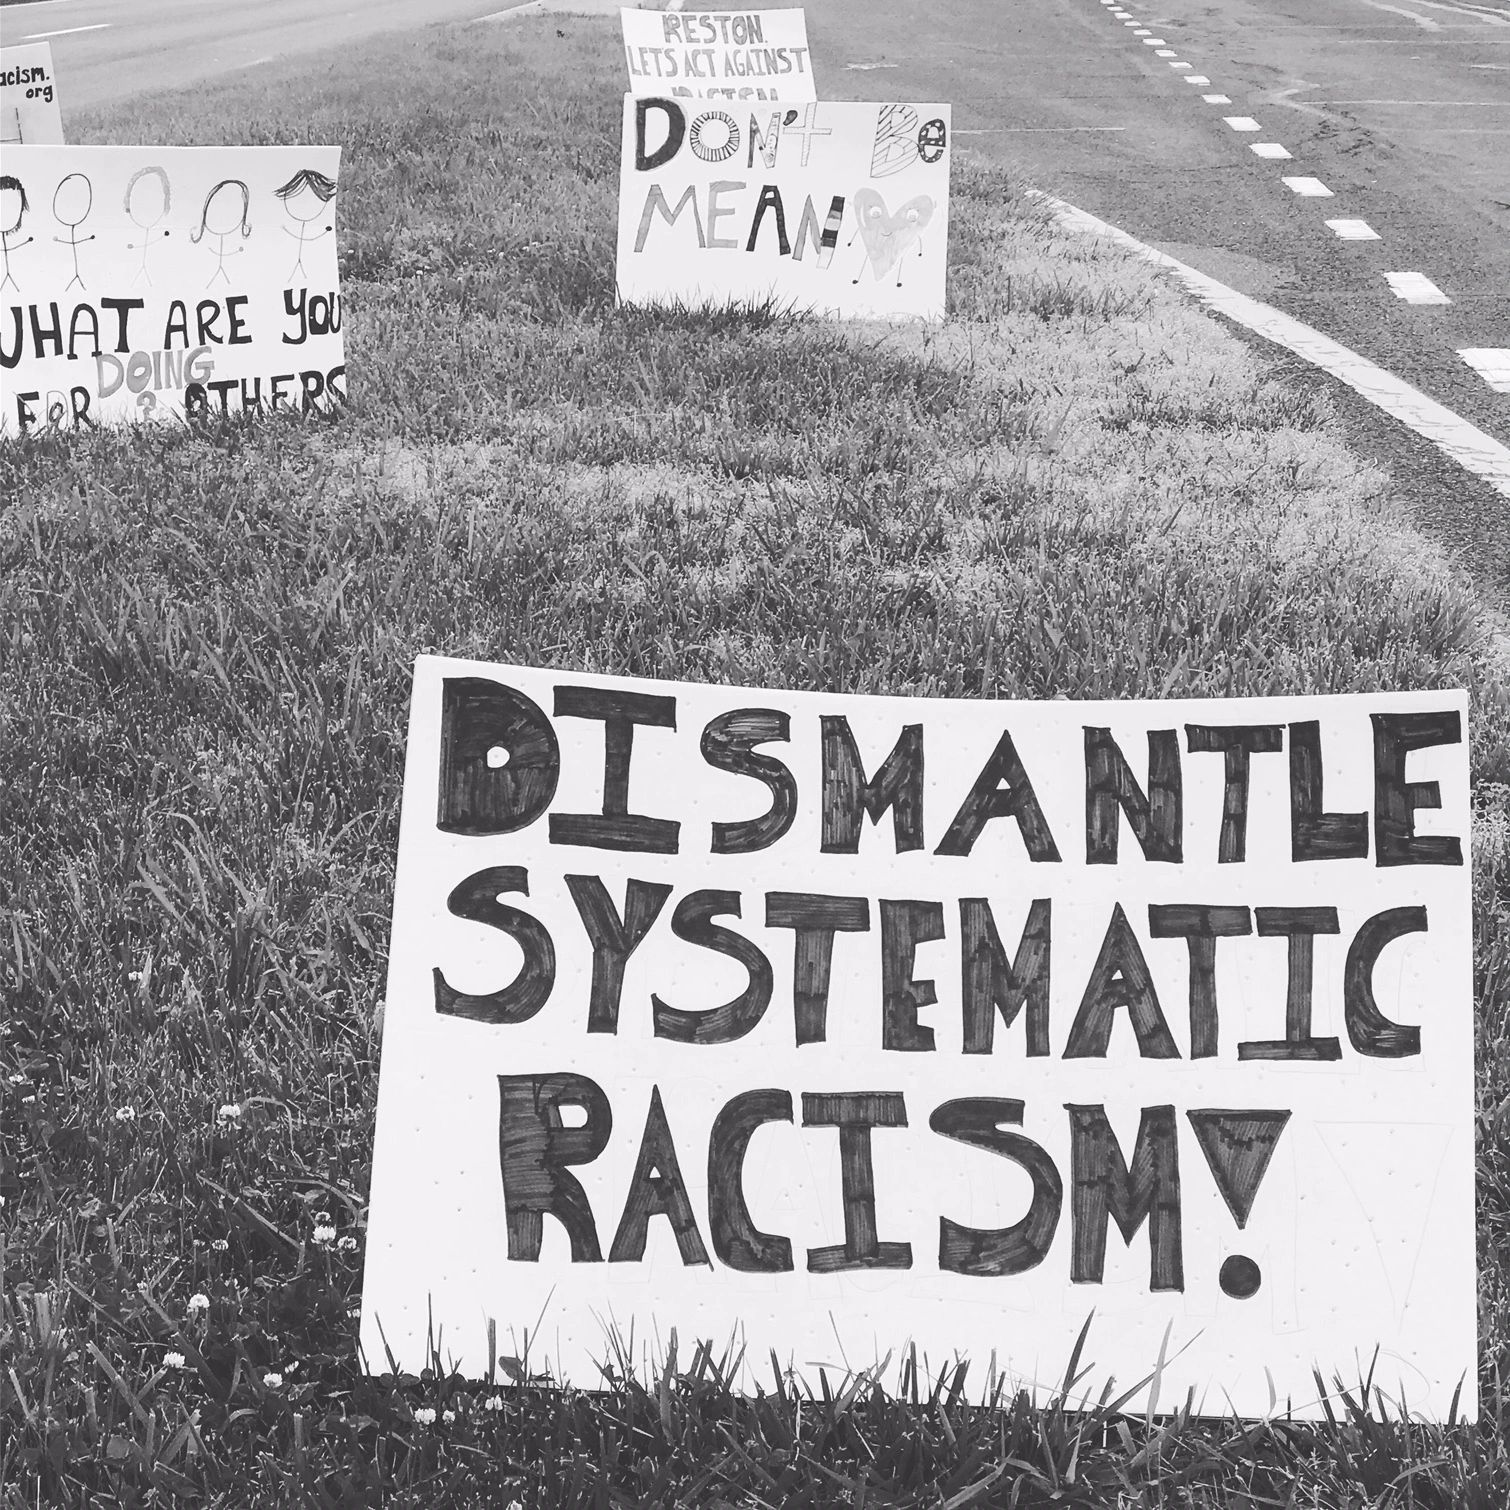 dismantle systemic racism black lives matter racial trauma